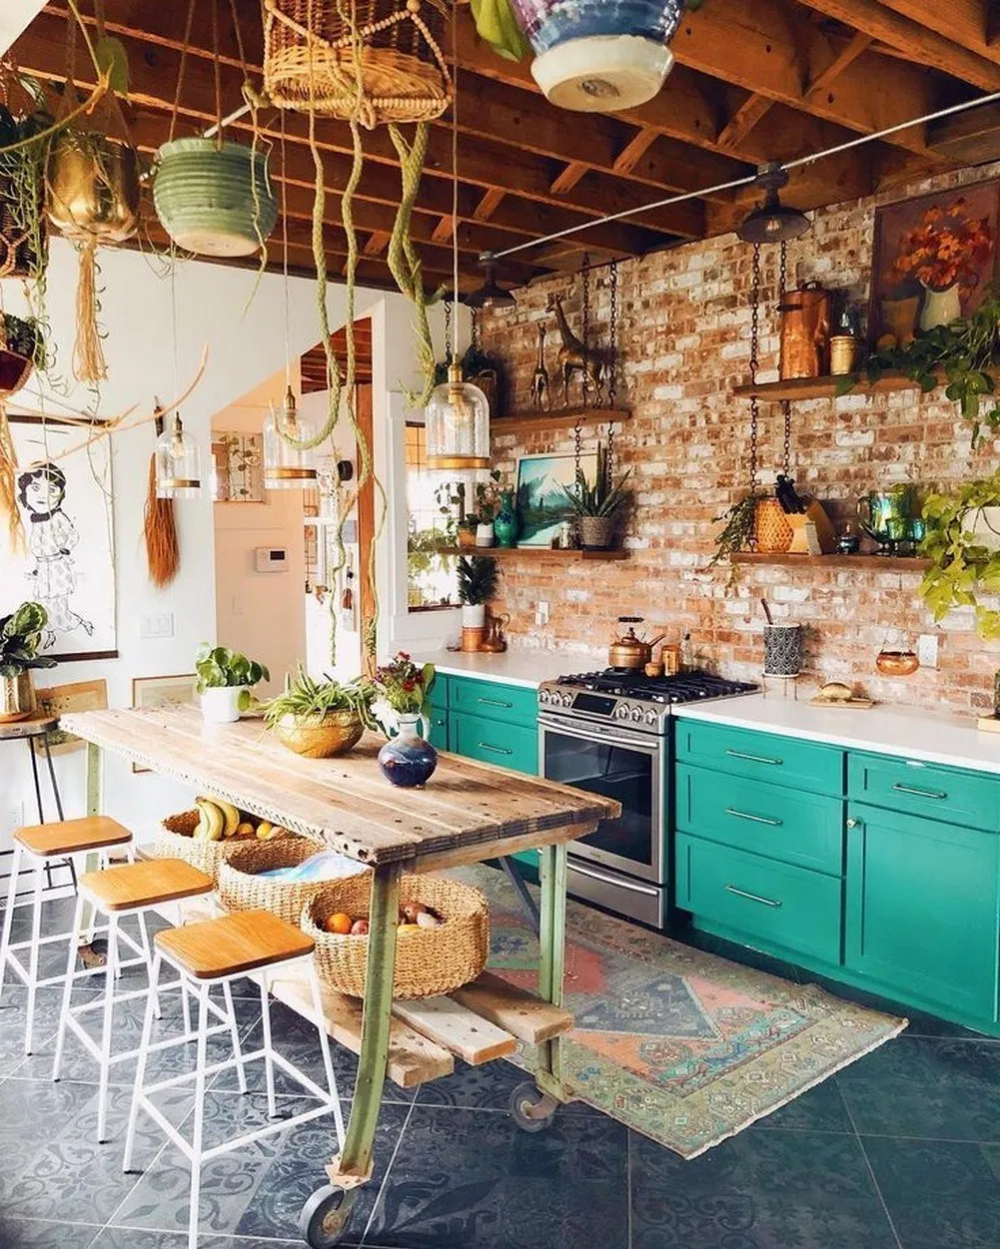 Photo of 37 design ideas for boho style kitchens 2 #kitchen #bohokitchen #kitchendesign …. – My Blog